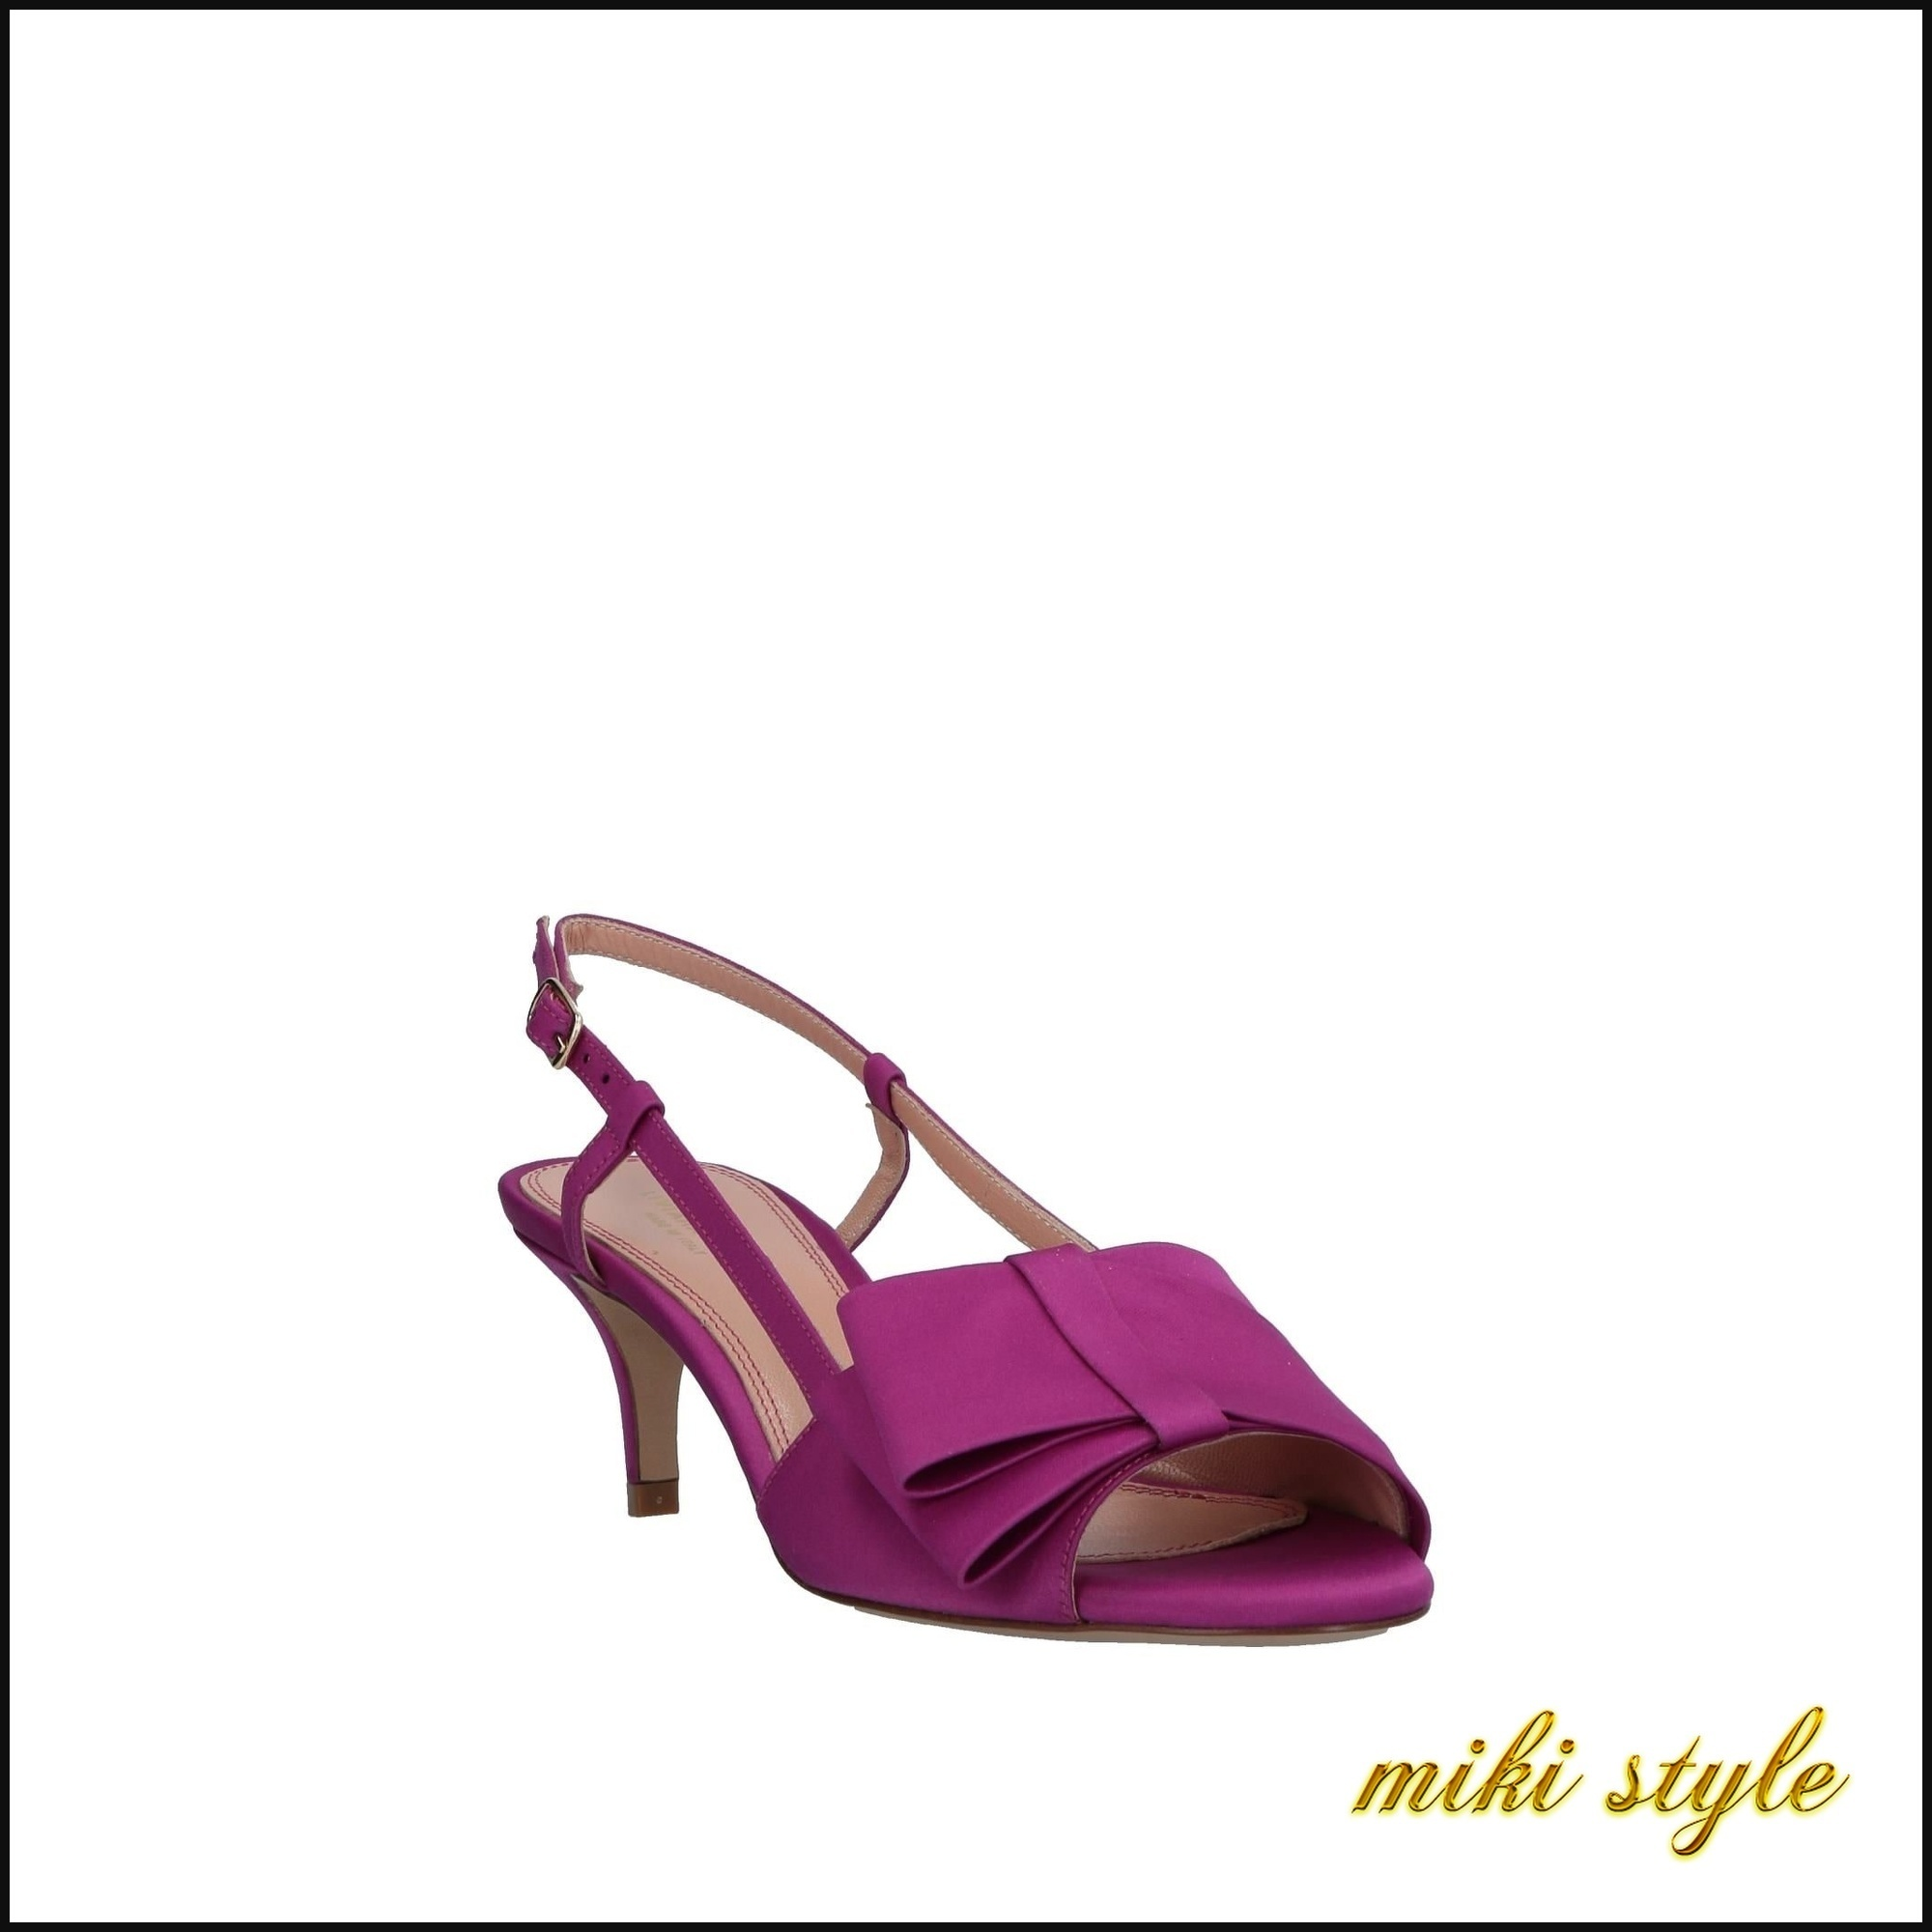 shop liviana conti shoes